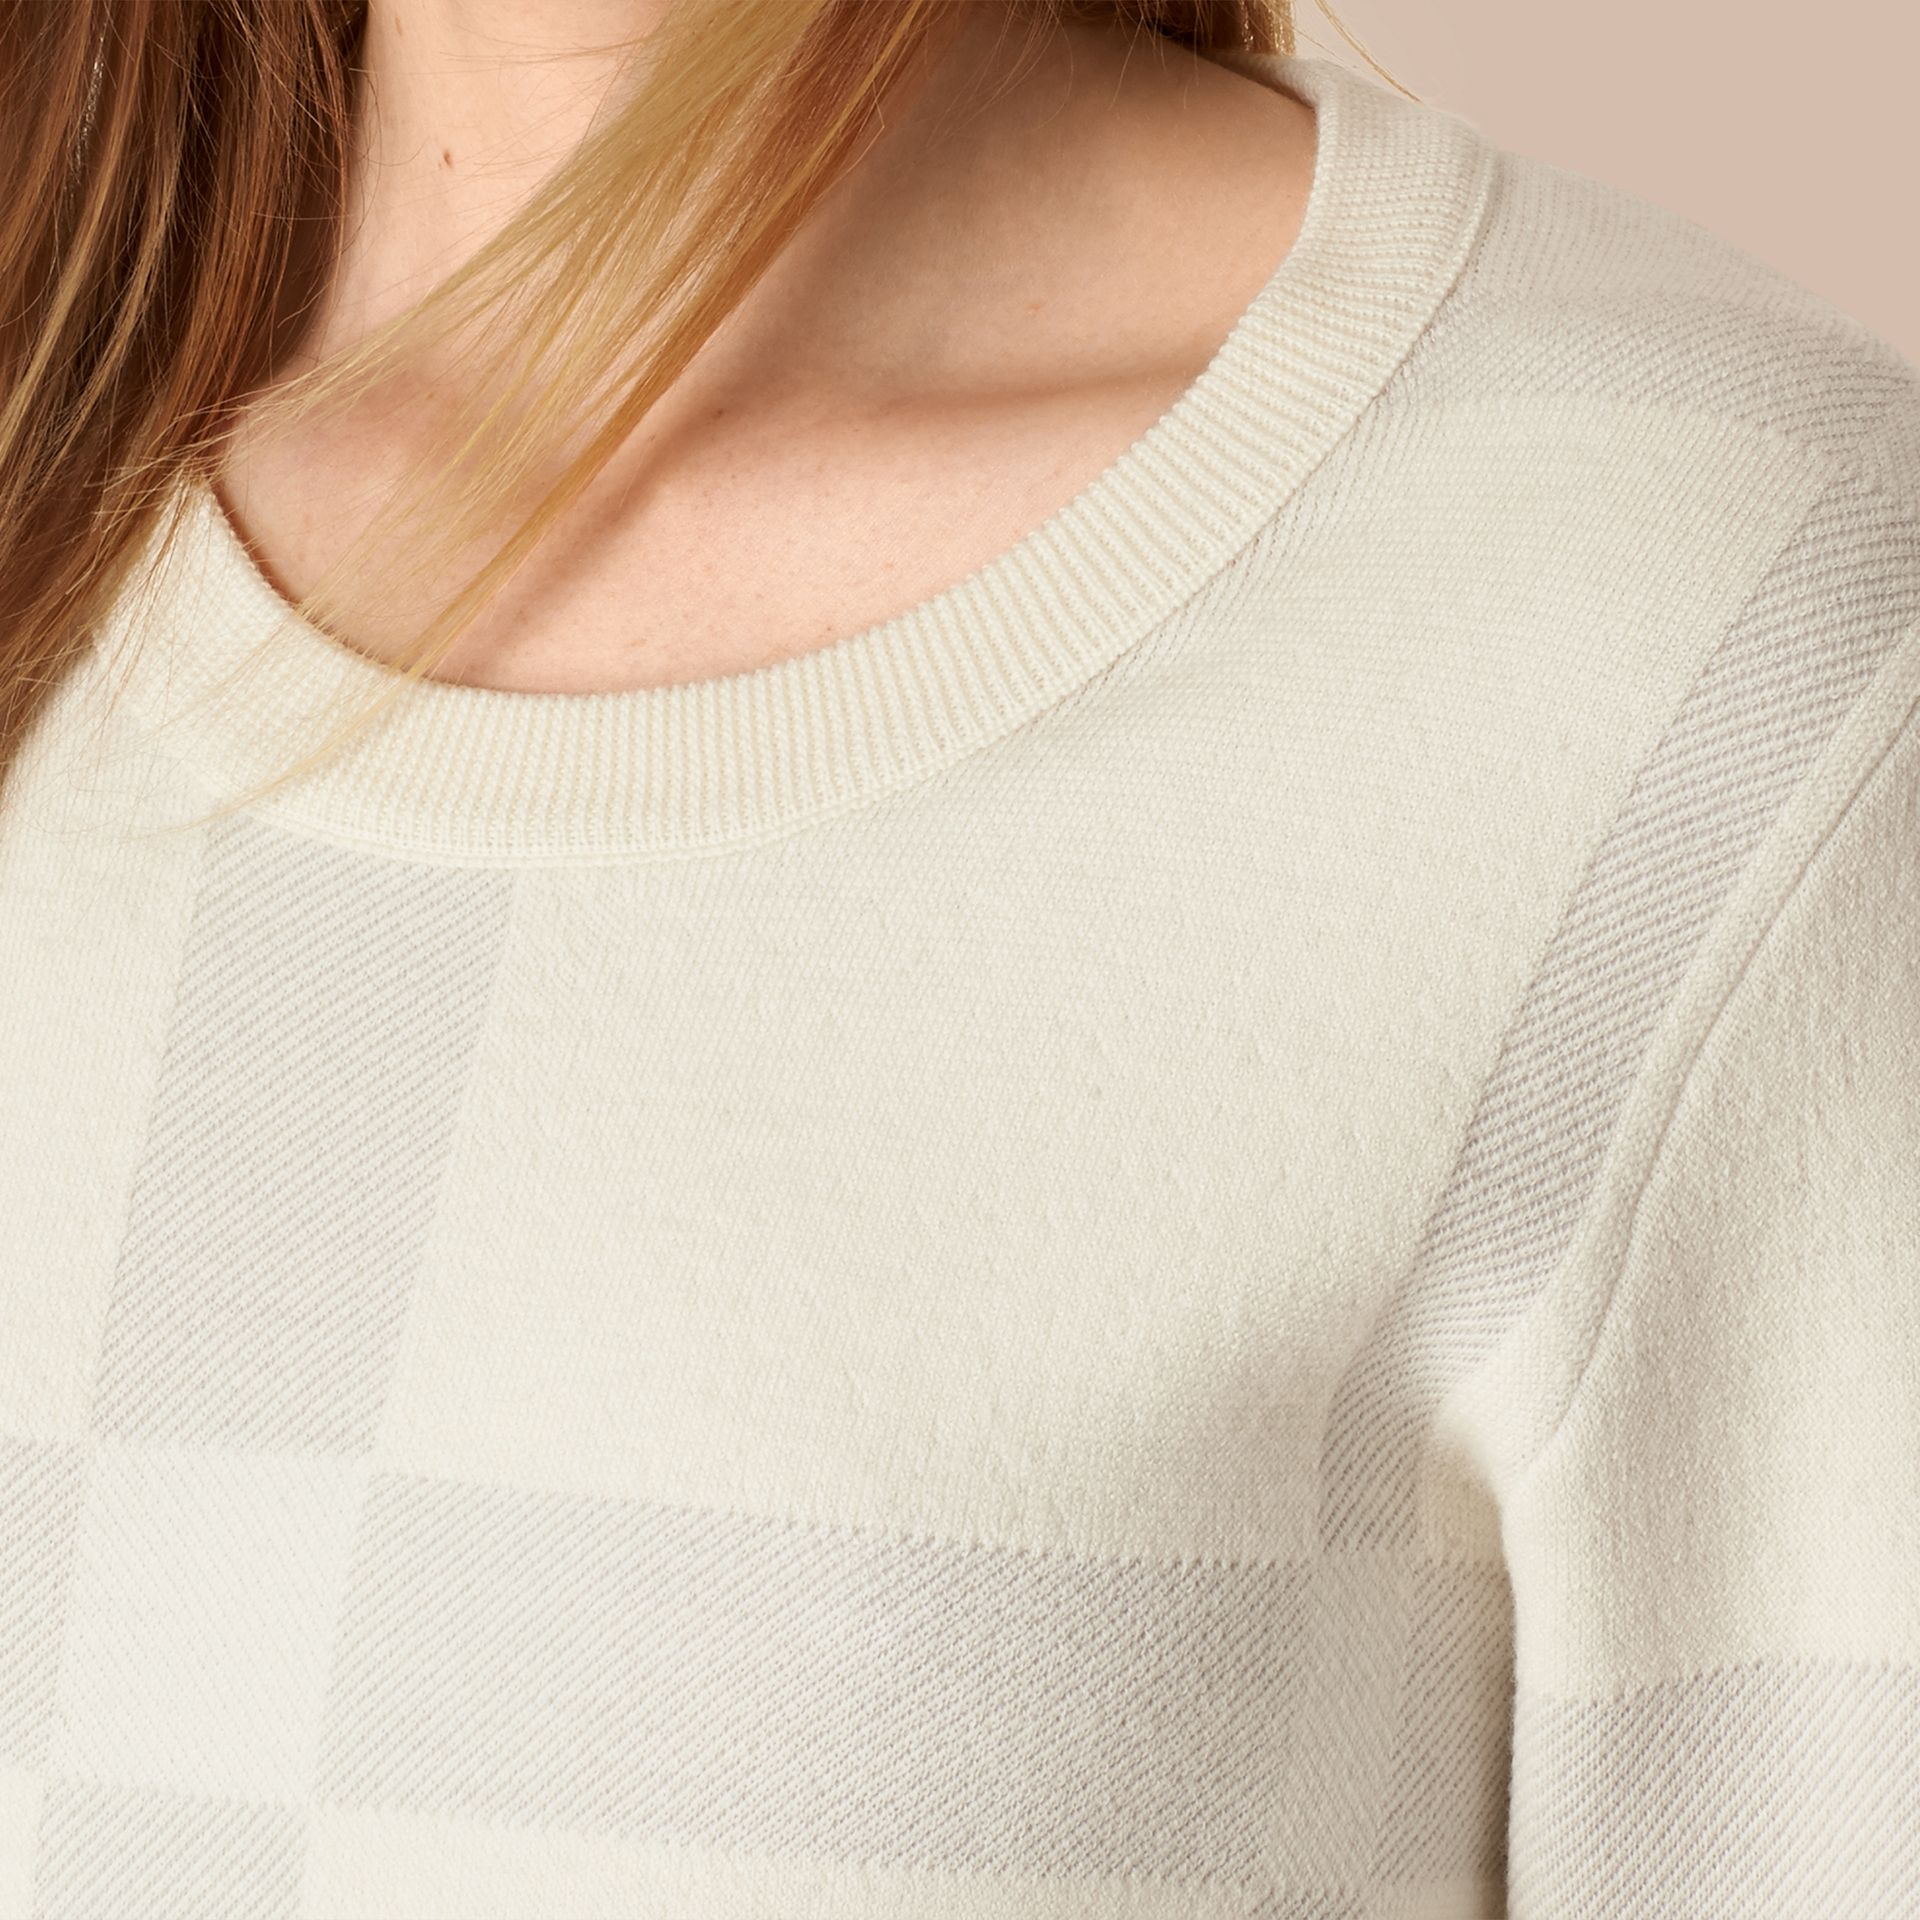 Natural white Check Knit Wool Blend Sweater Natural White - gallery image 2